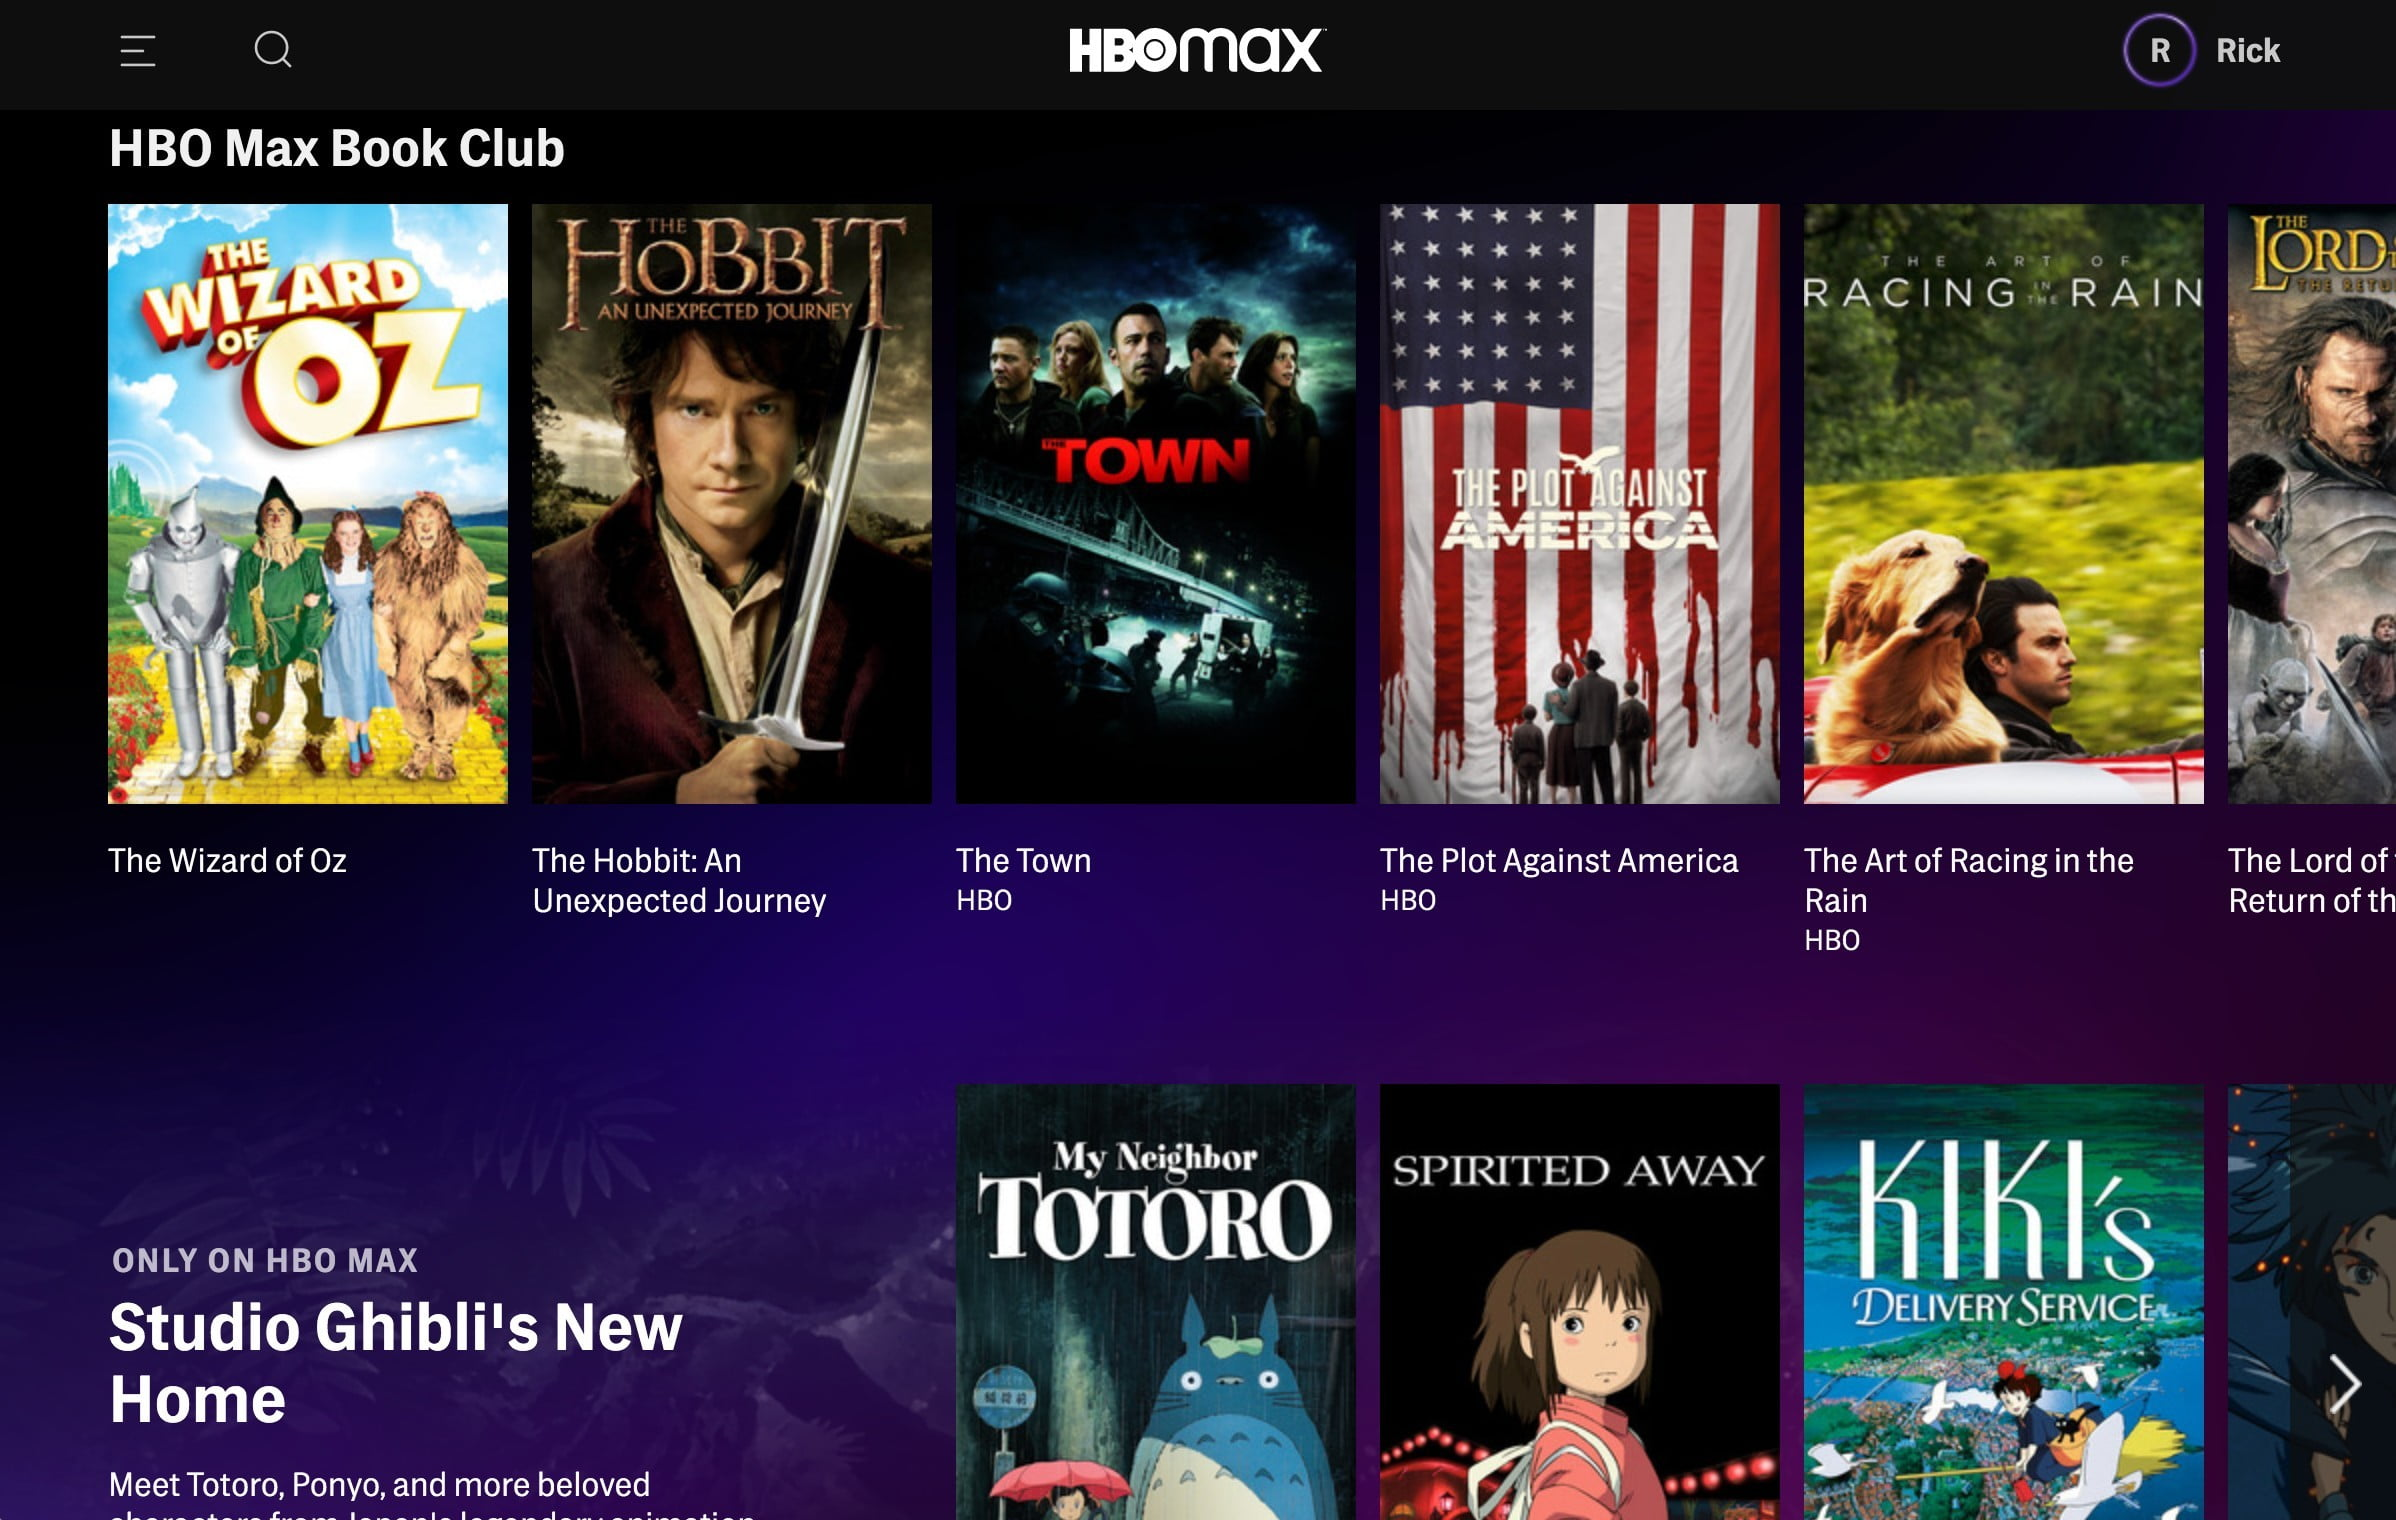 I'm Not Mad, HBO Max, I'm Just Disappointed | Digital Trends